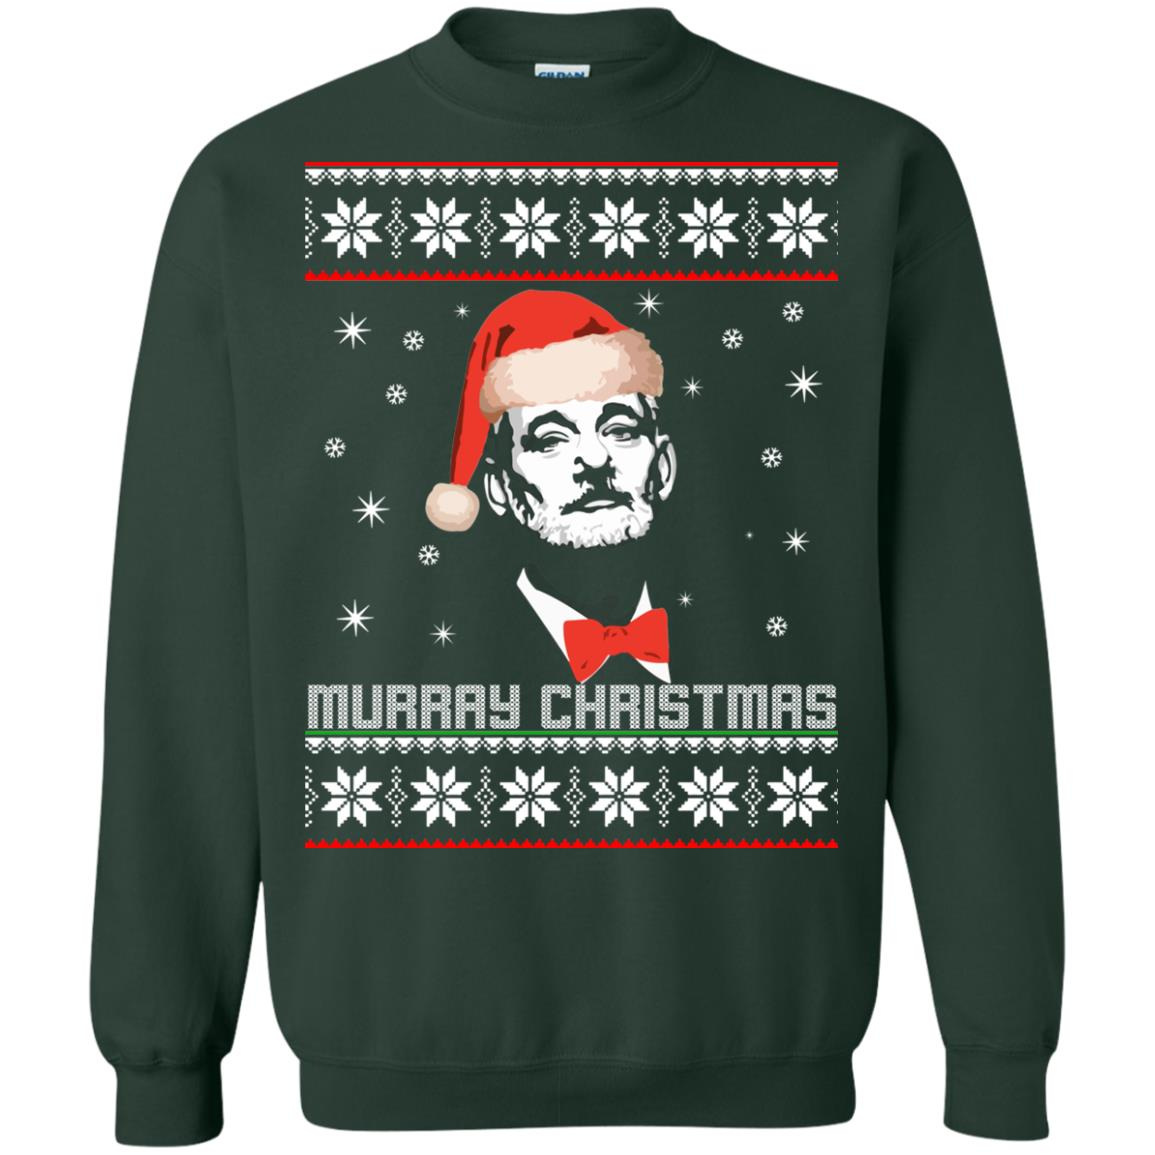 murray christmas ugly sweater shirt hoodie image 1958 500x500